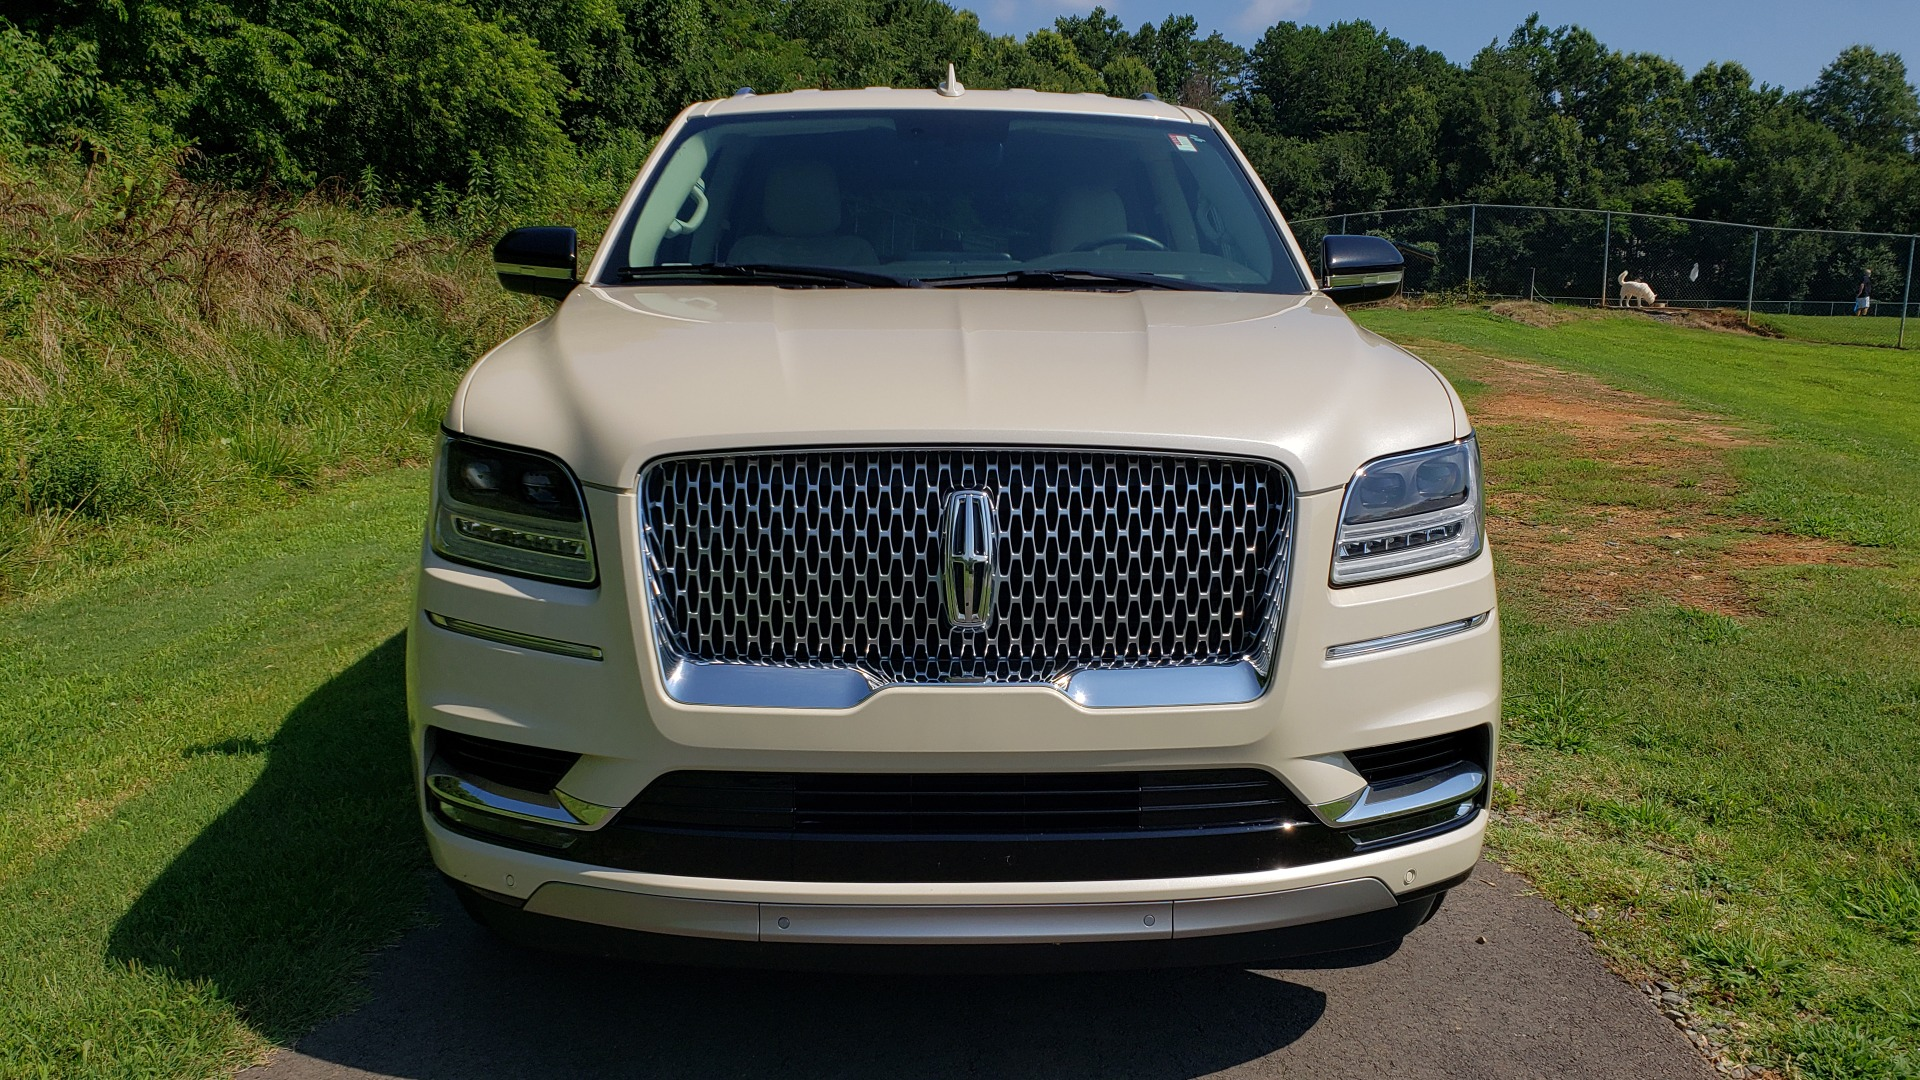 Used 2018 Lincoln NAVIGATOR PREMIERE 4X2 / TWIN-TURBO V6 / NAV / 3-ROW / REARVIEW for sale Sold at Formula Imports in Charlotte NC 28227 11